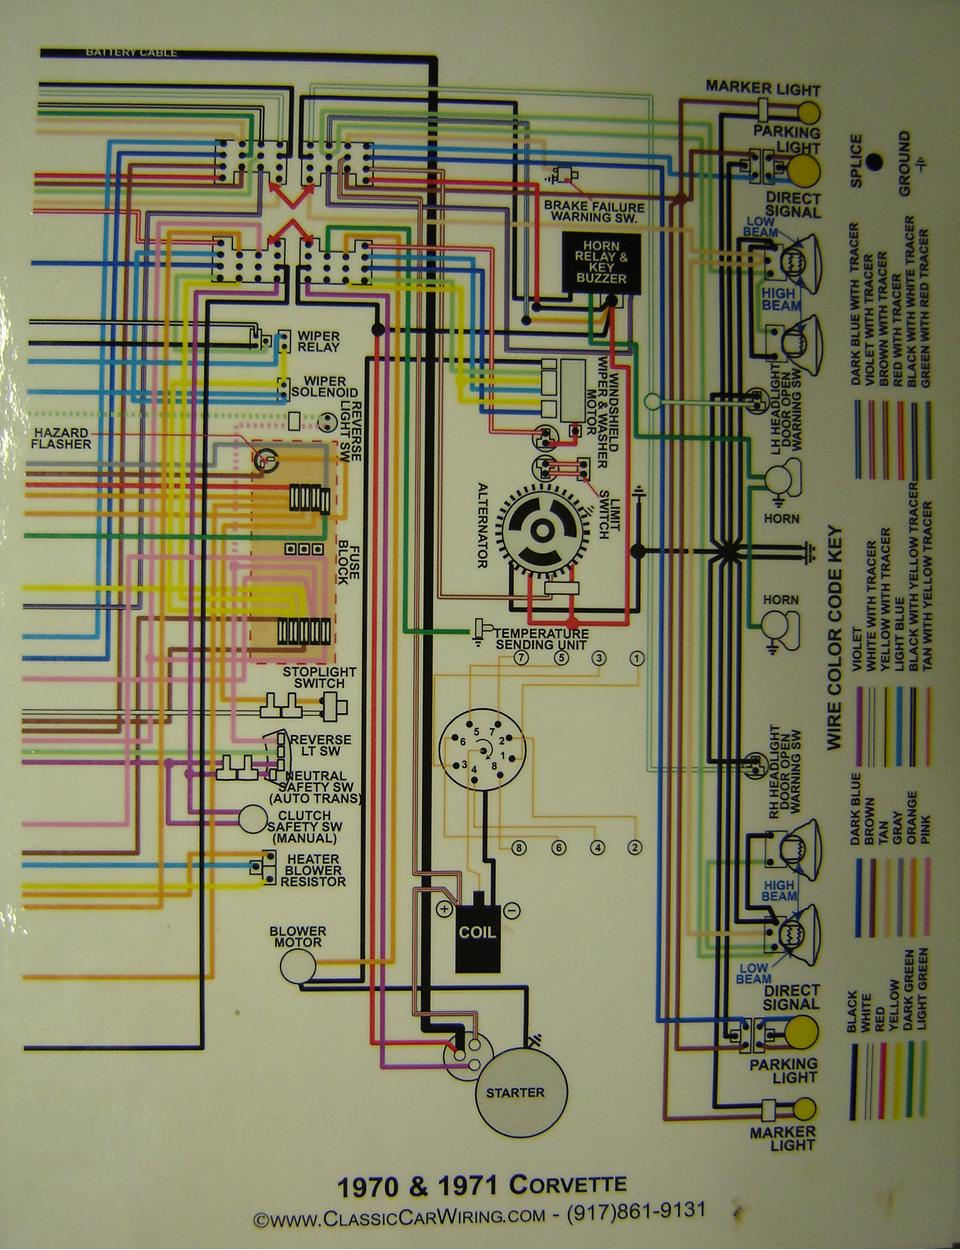 Chevy 350 Starter Wiring Diagram 1970 Corvette Vacuum Diagram How To